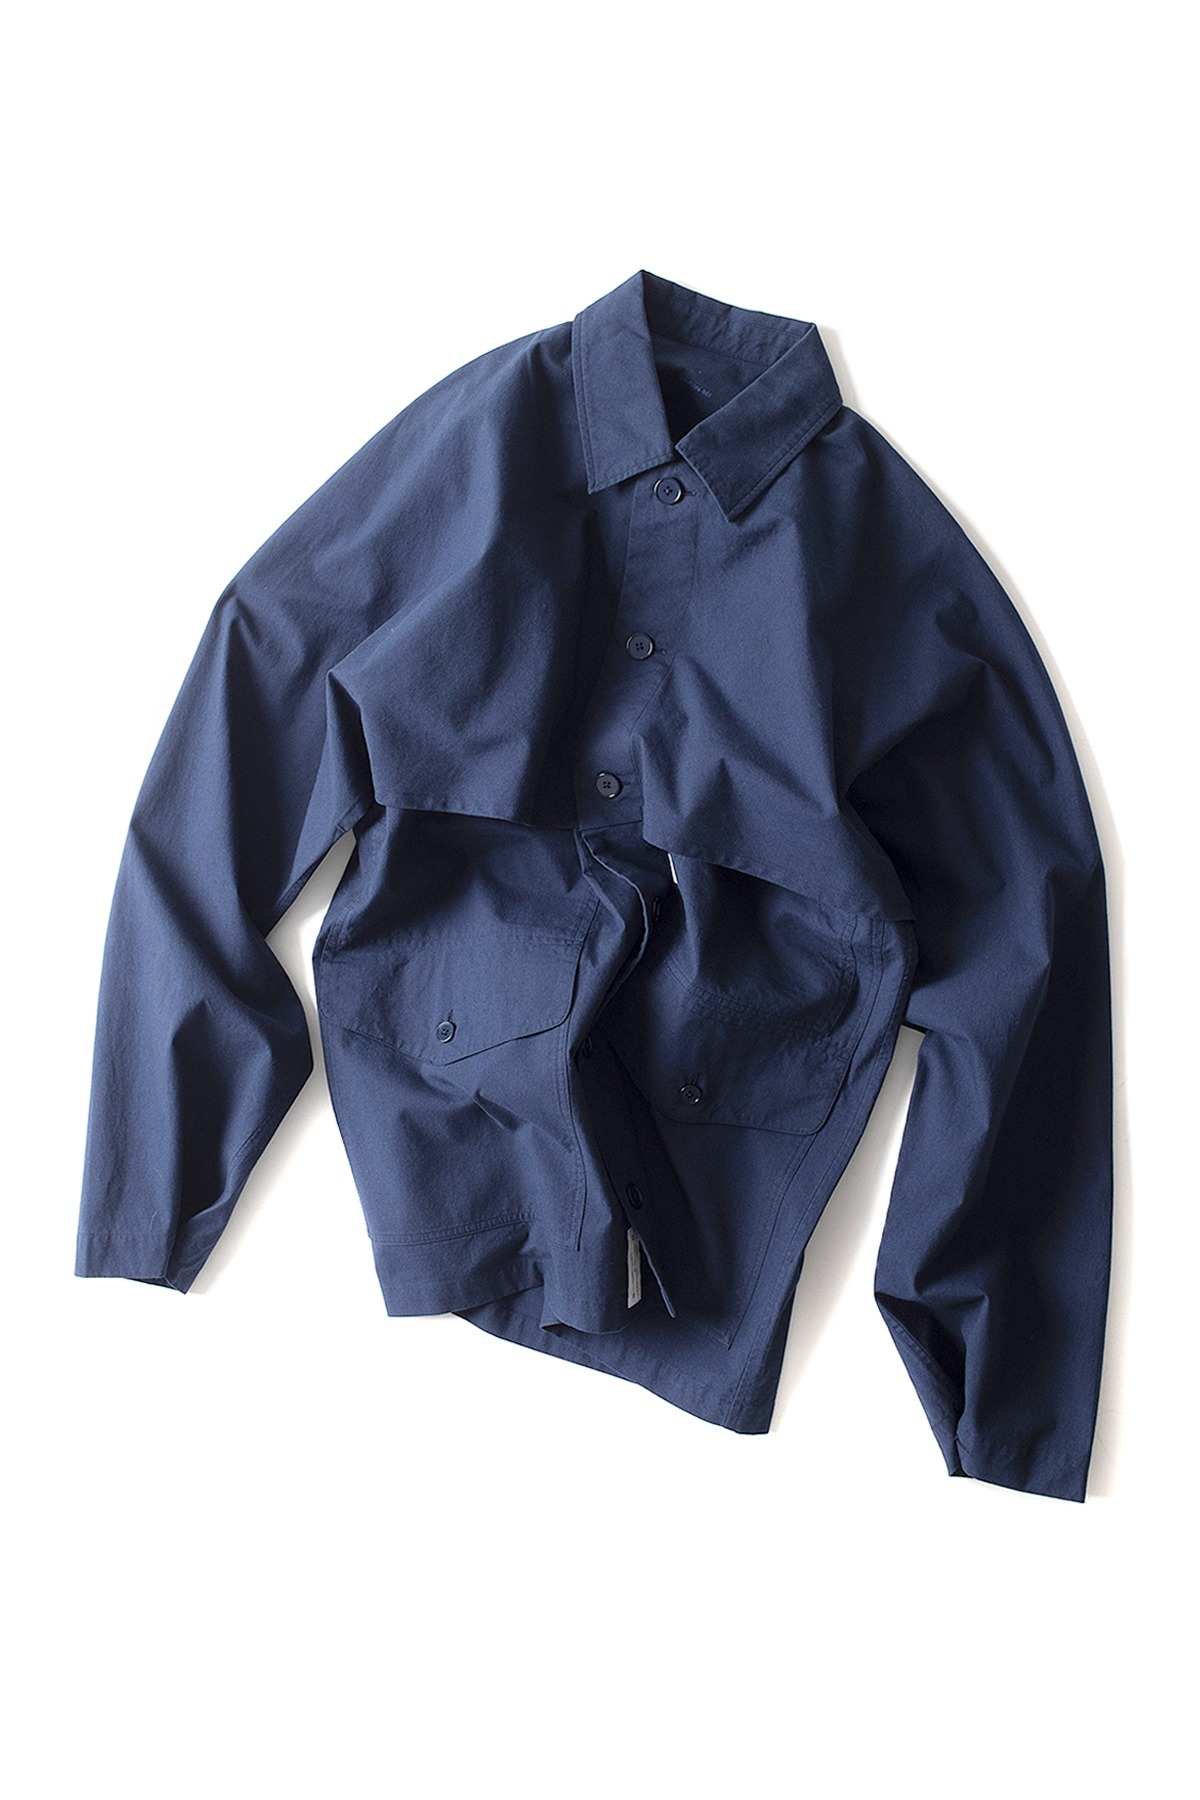 S H : Mackinaw Shirt (Navy)